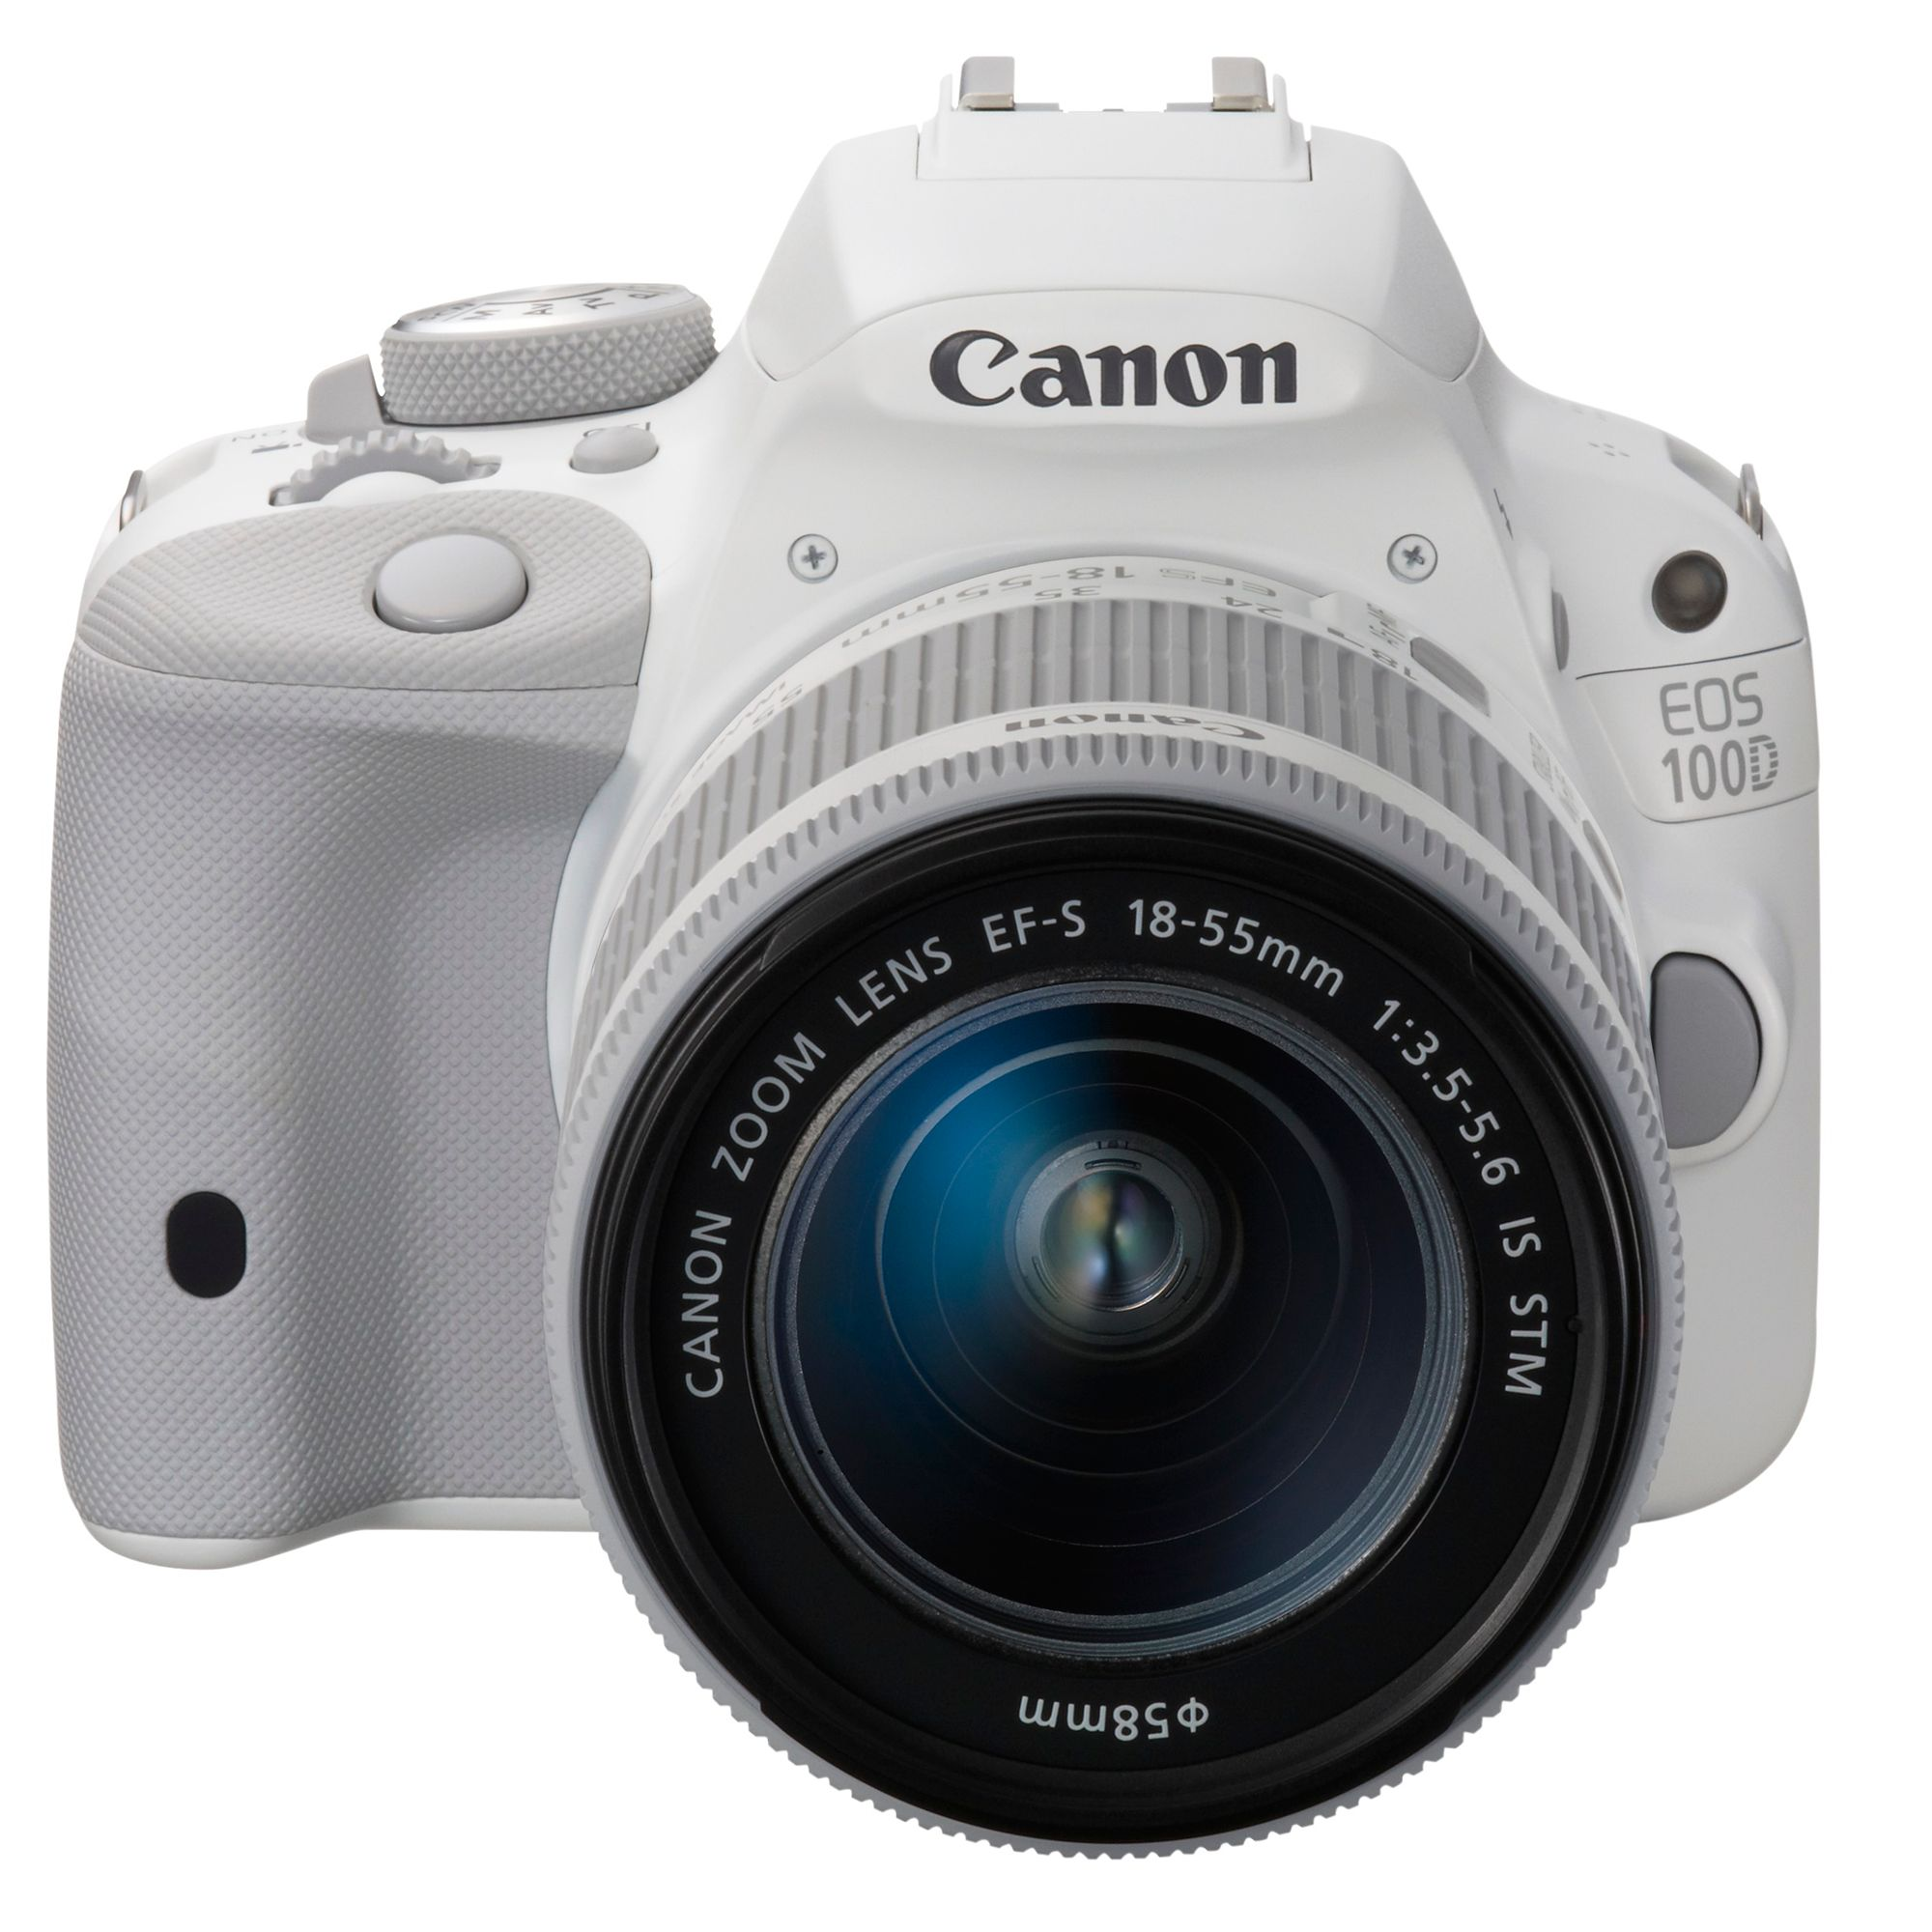 Camera Dslr Camera Price In Uk buy canon eos 100d digital slr camera with 18 55mm is stm lens hd hd